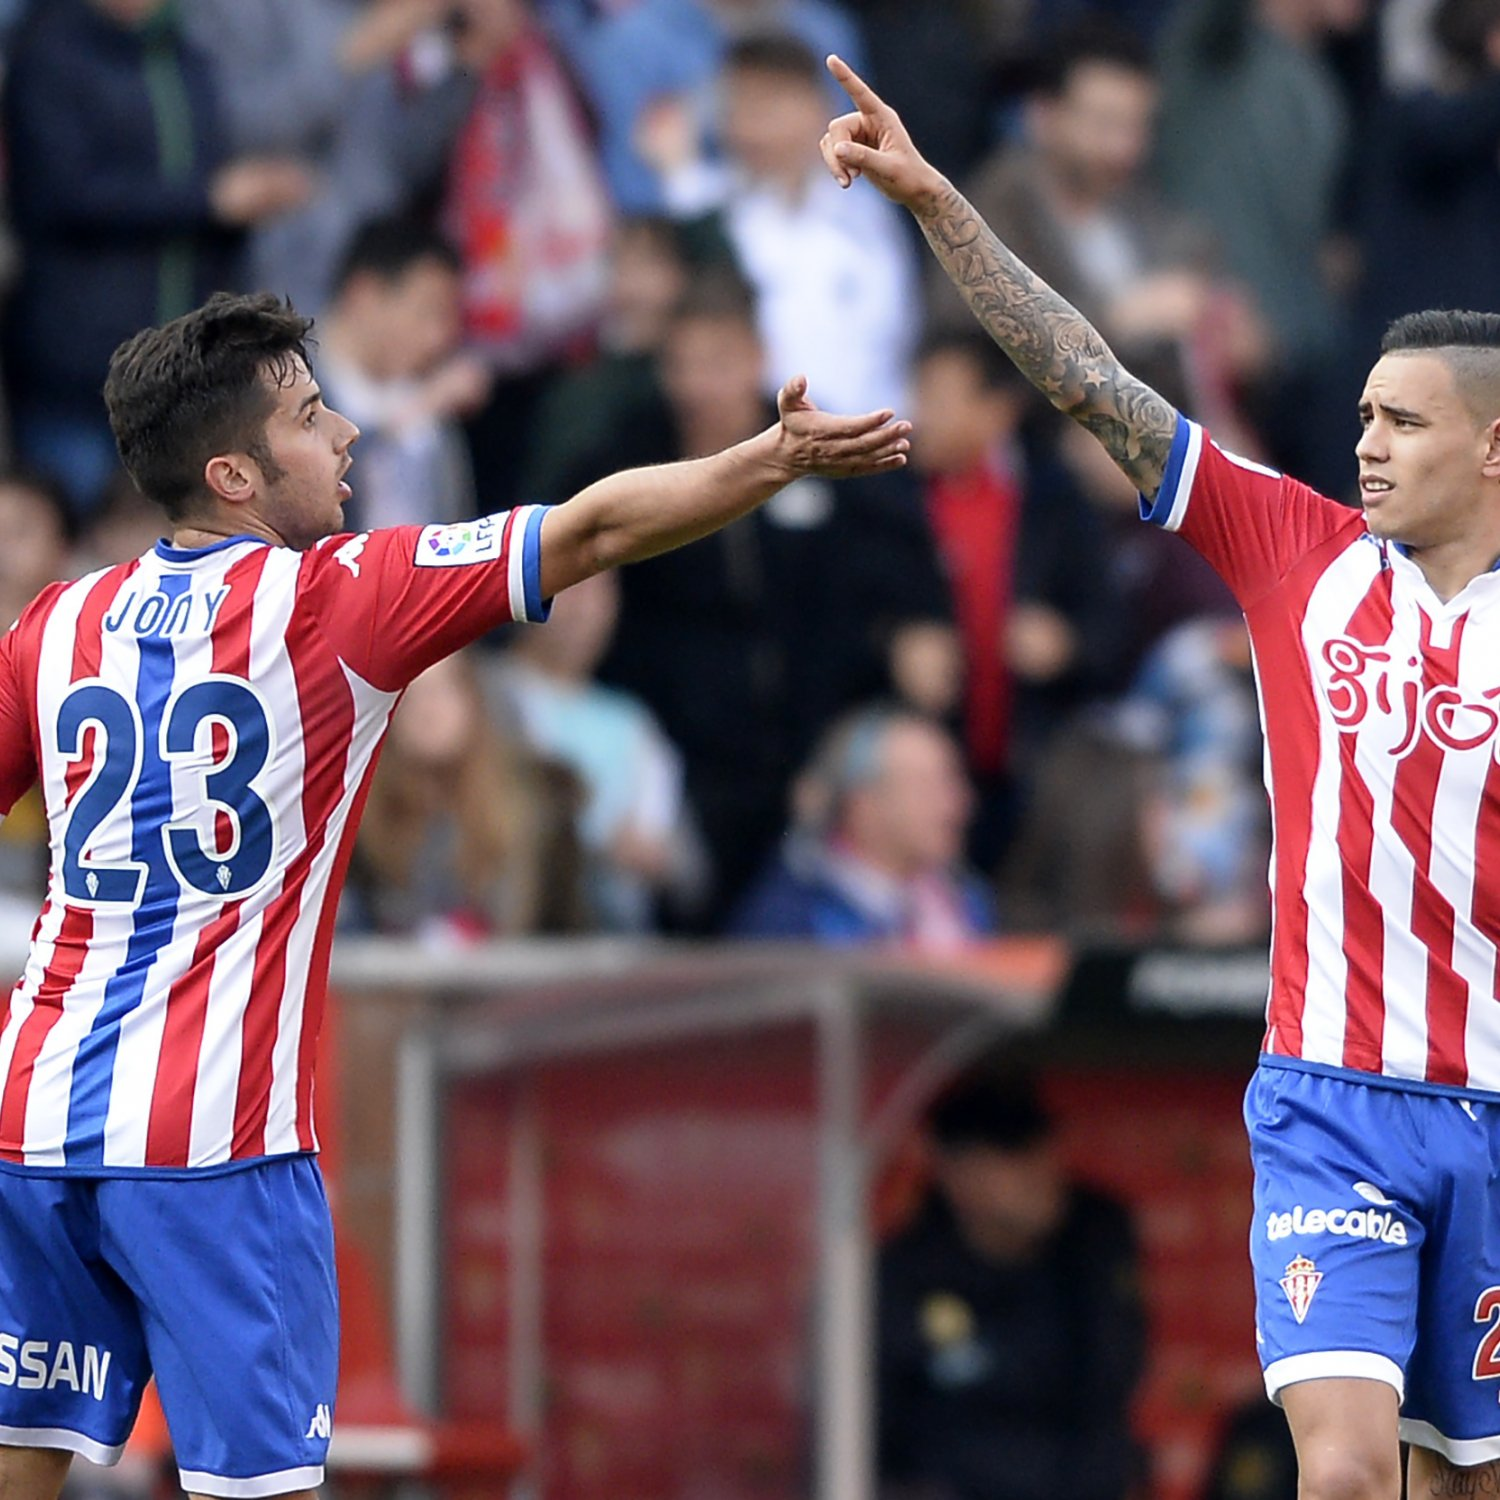 La liga table 2016 latest standings and odds following - La liga latest results and table ...